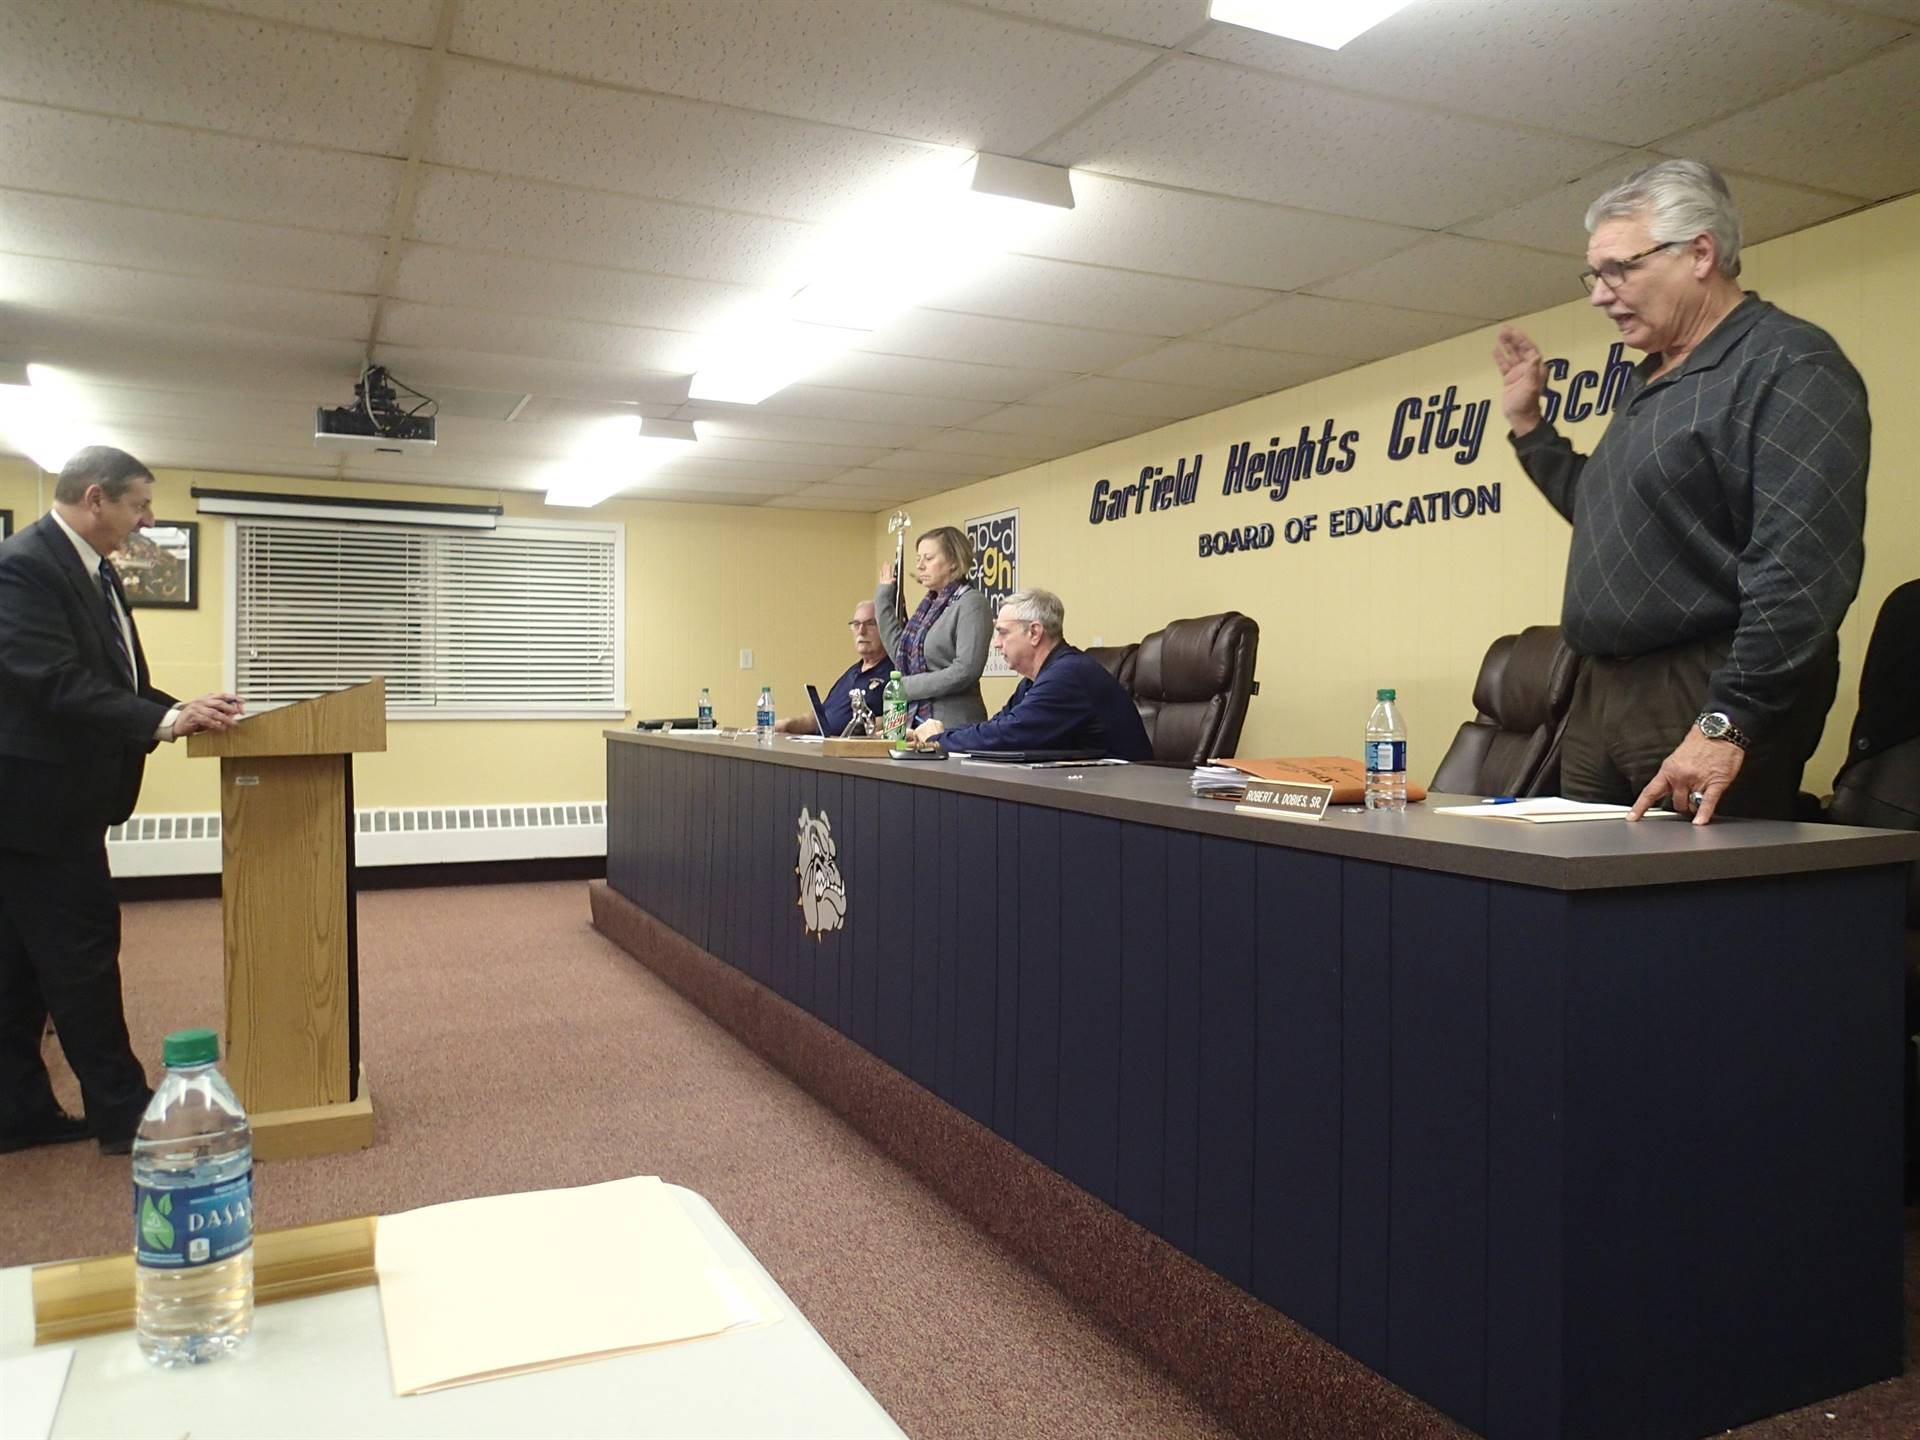 Robert Dobies during the swearing in ceremony for the Garfield Heights Board of Education